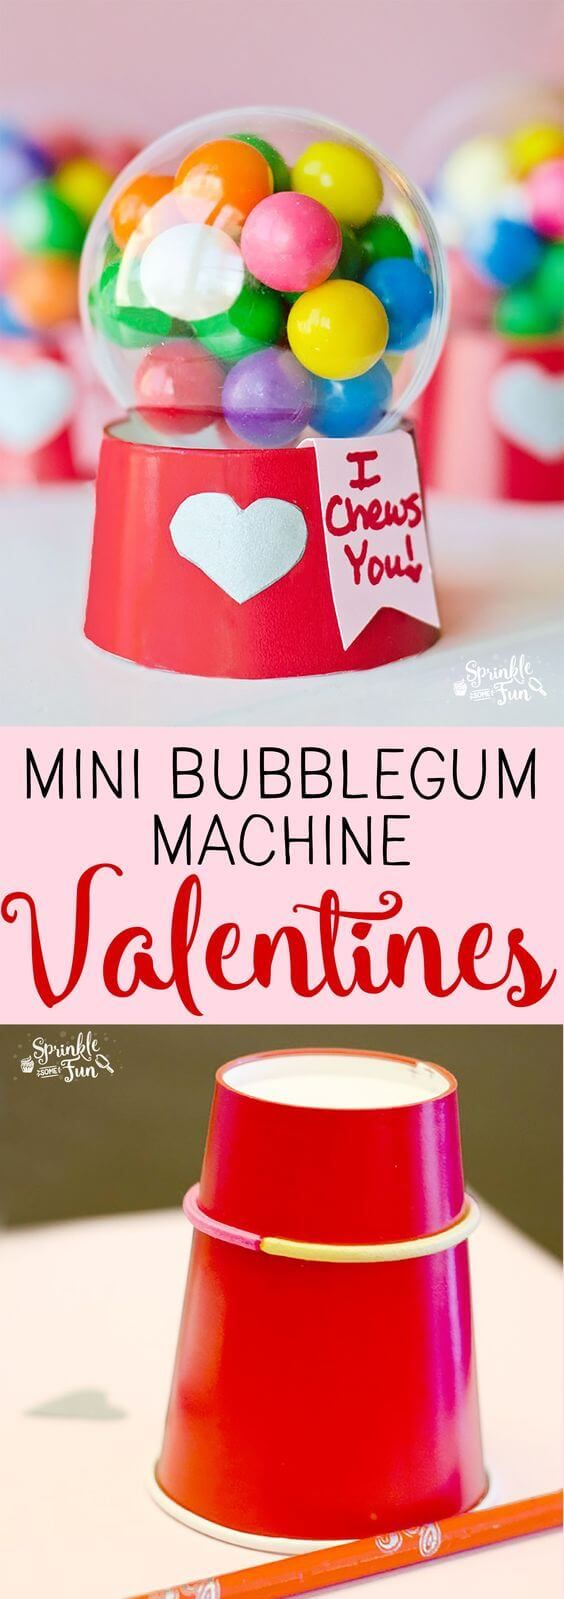 27 Sweet Valentine's Day Party Ideas to Show Your Guests Some Love